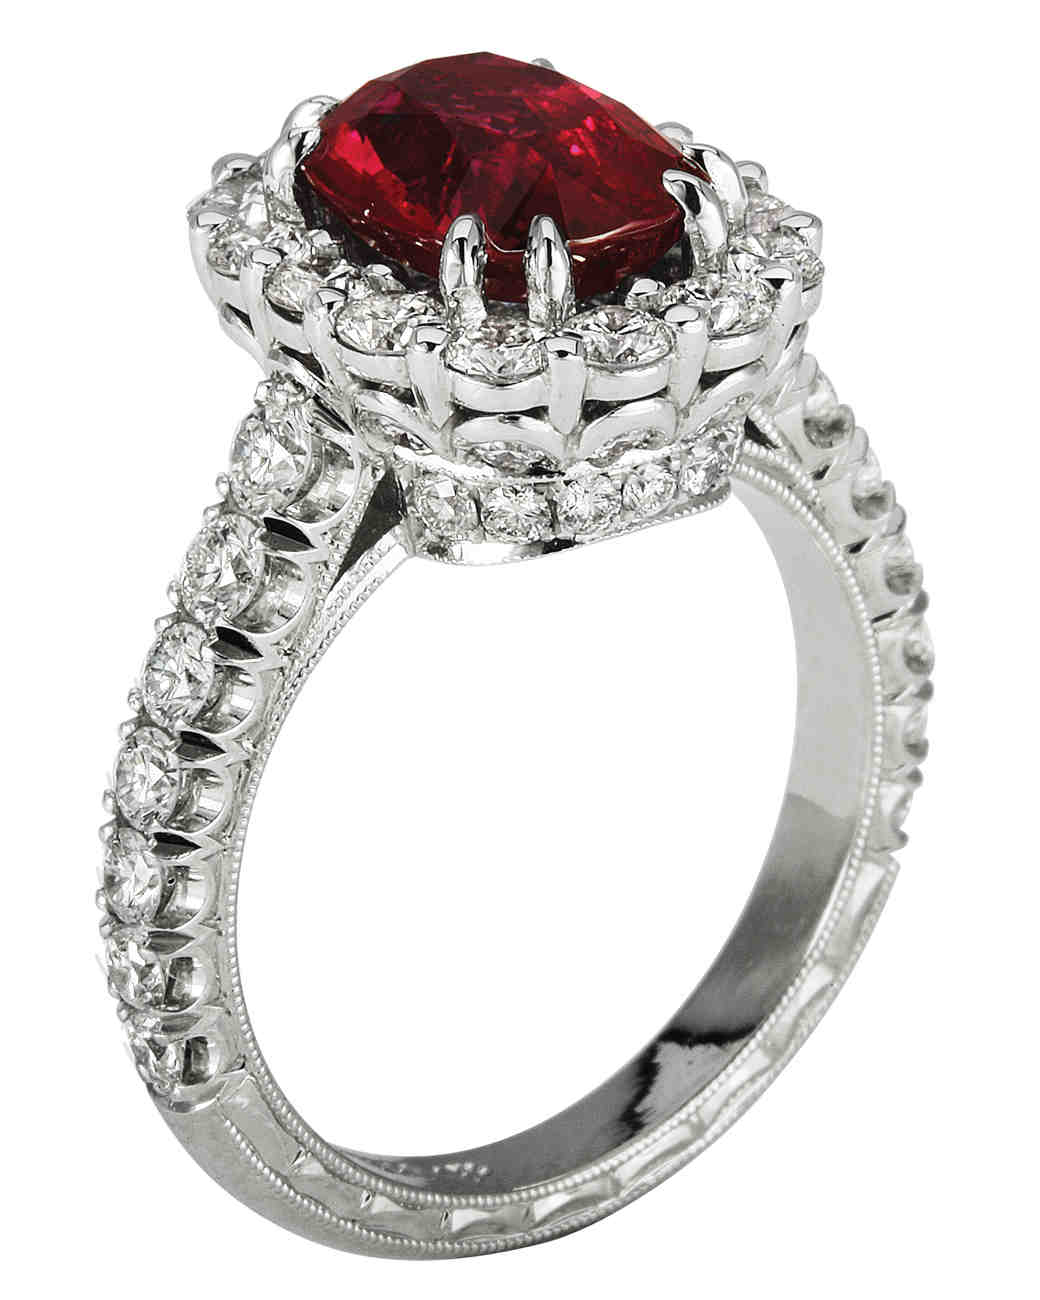 Jack Kelége platinum Ruby Engagement Ring with Halo on Platinum Setting